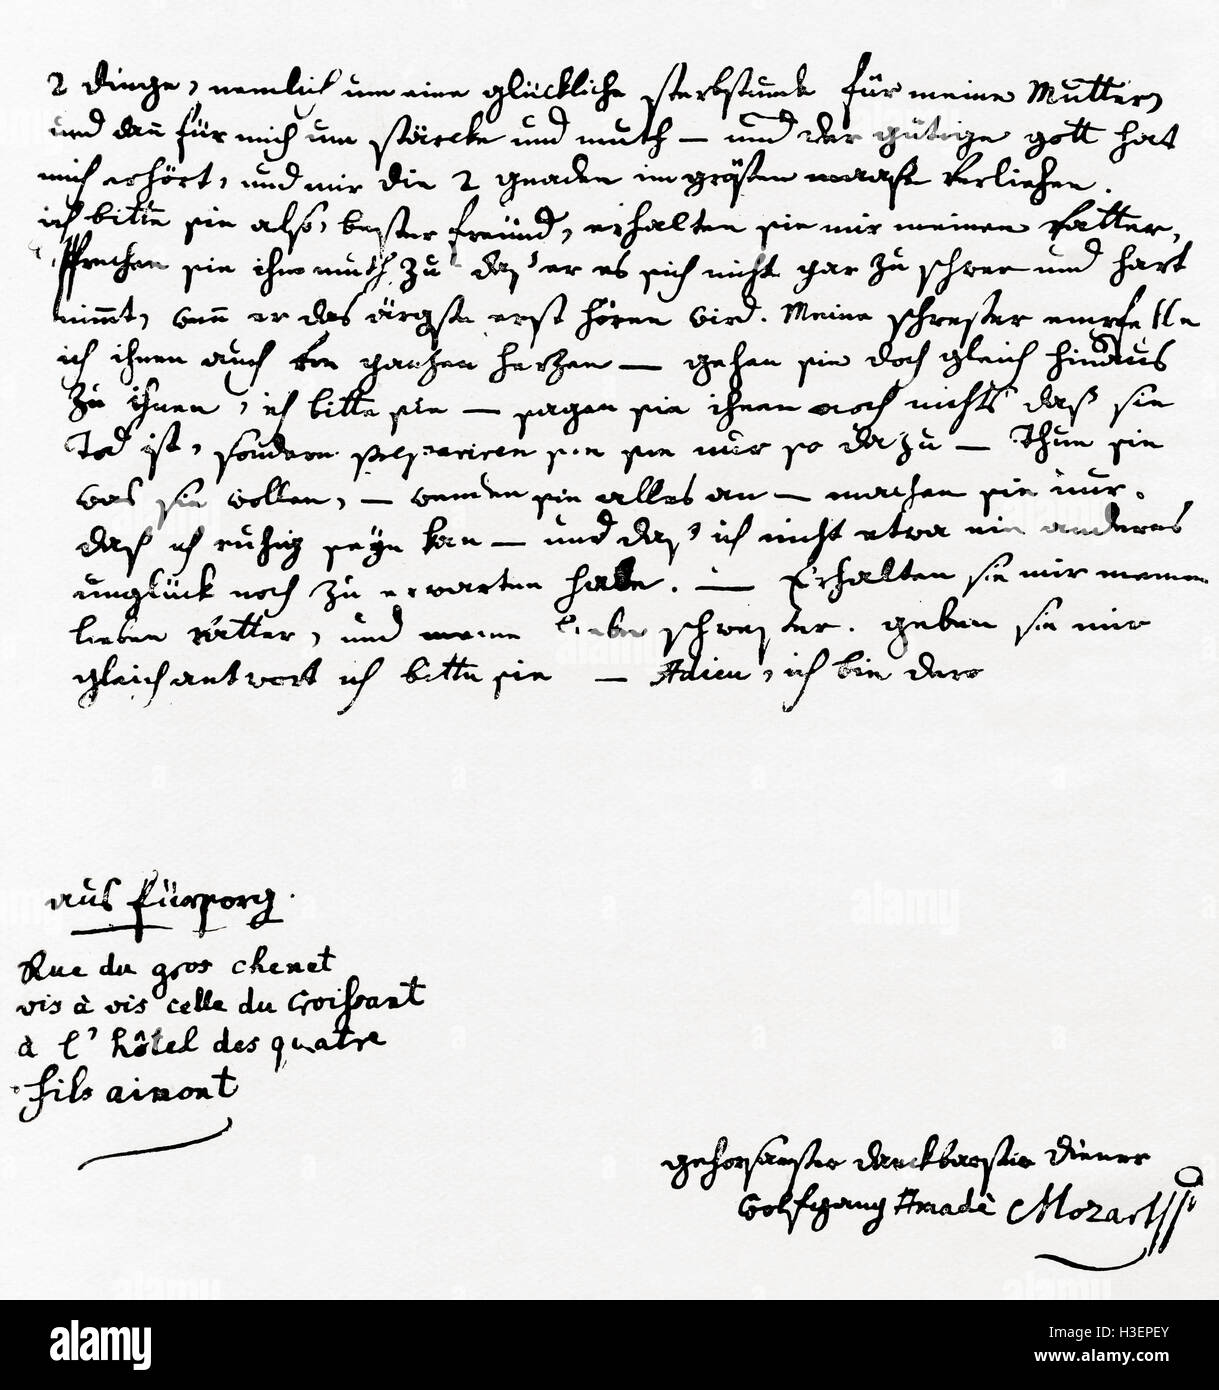 Mozart Lettere: Letter Written By Mozart On The Death Of His Mother In